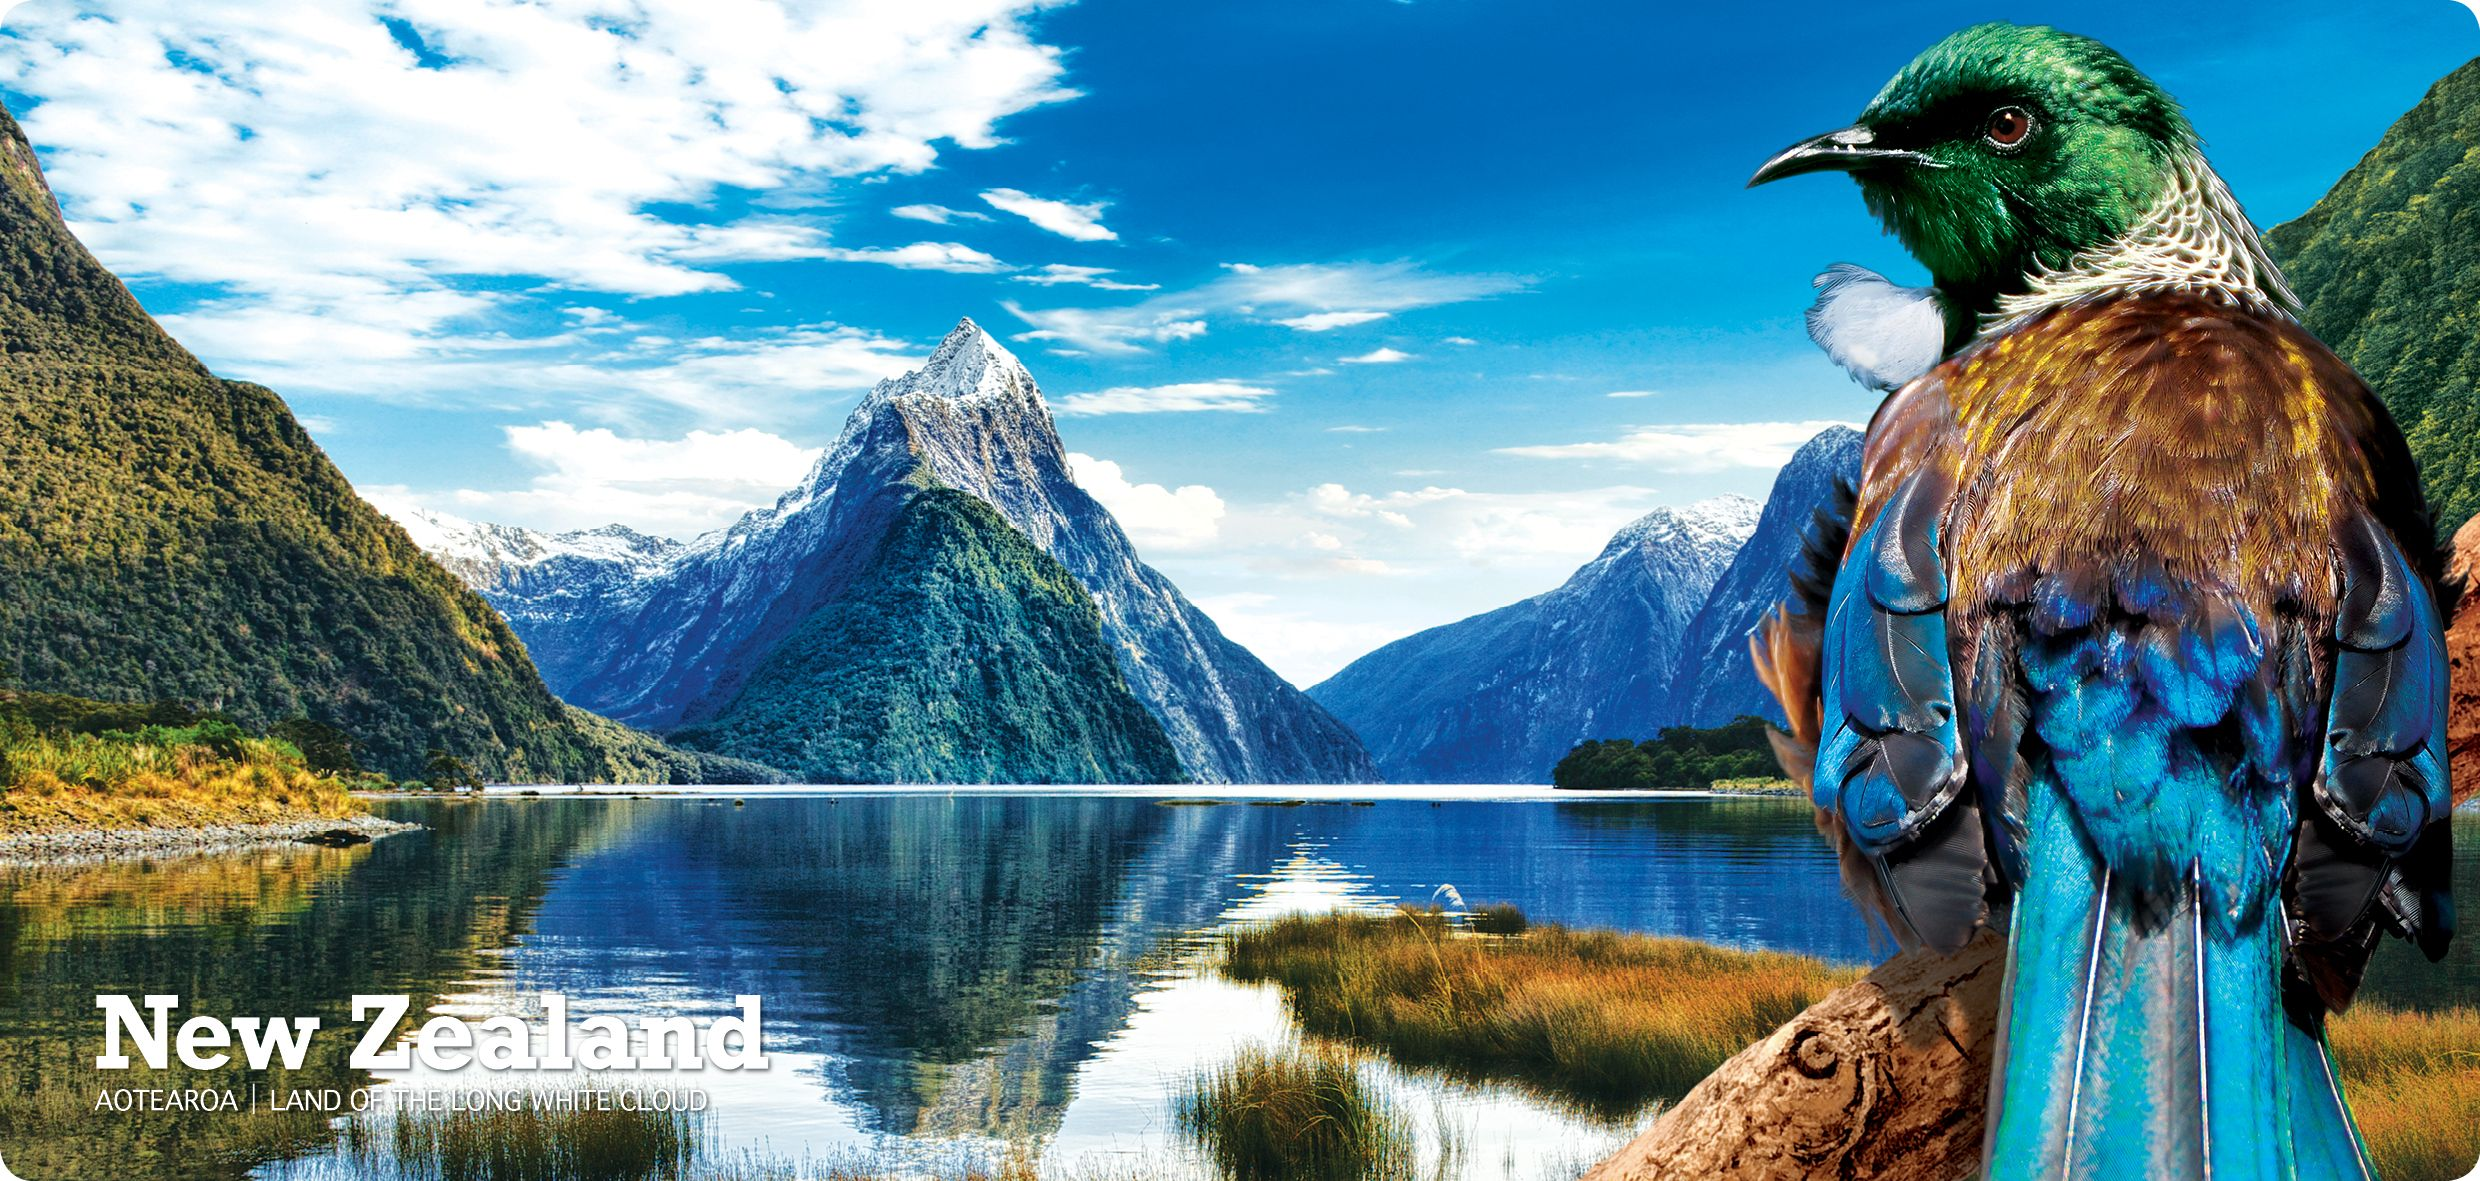 Tui Milford Sound - The best postcard in the country ;))